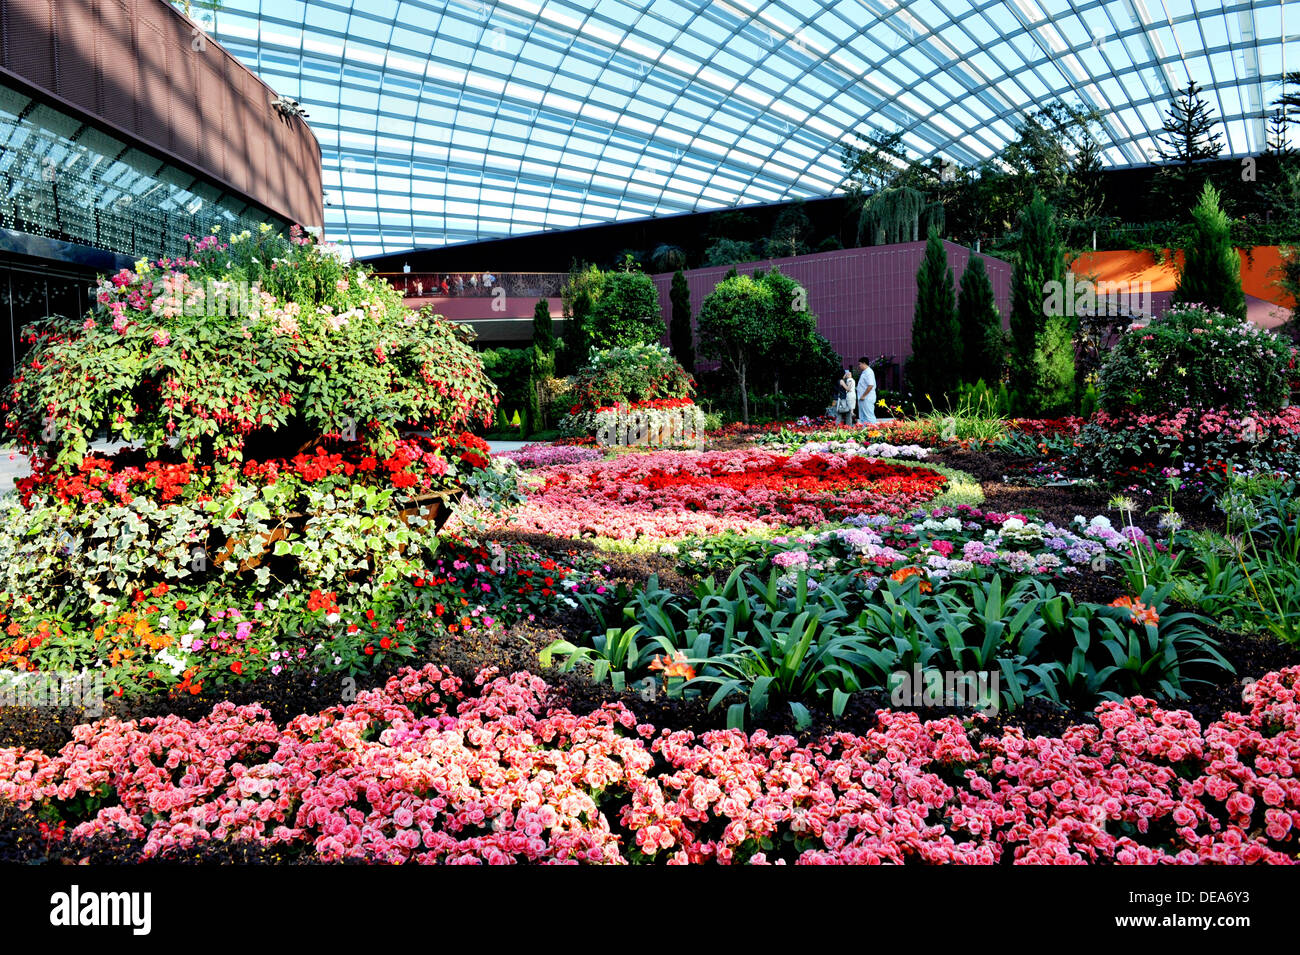 Singapore Tourist Attractions   Flower Dome At Gardens By The Bay